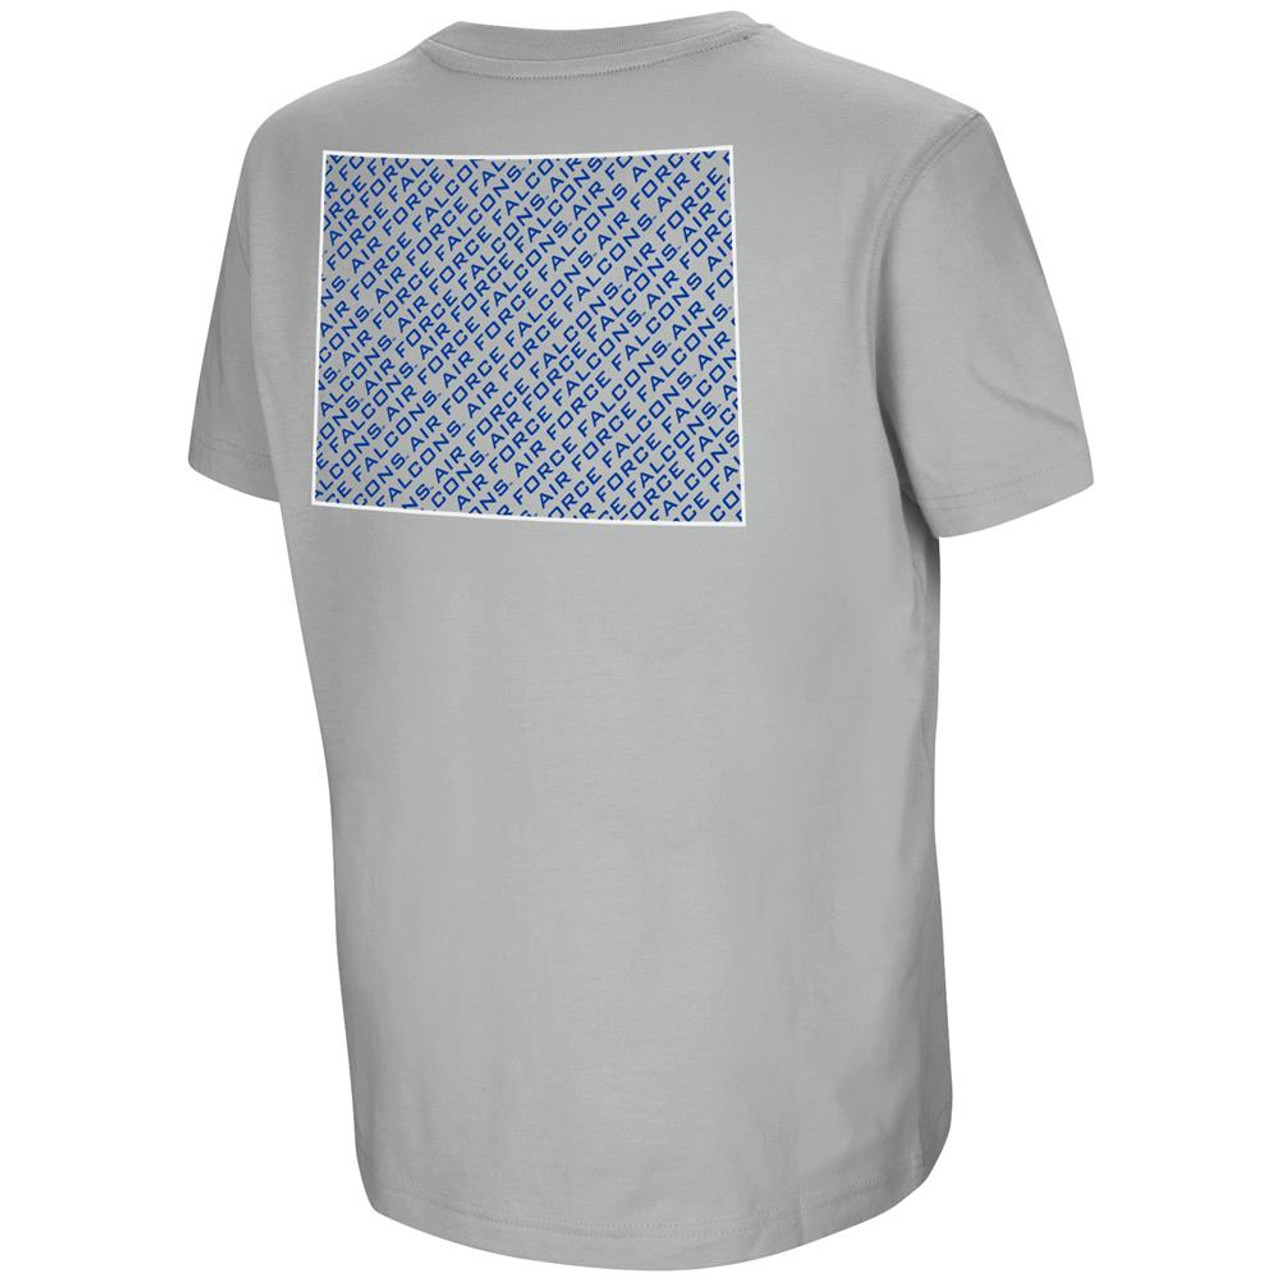 Air Force Academy Falcons Youth Graphic Tee